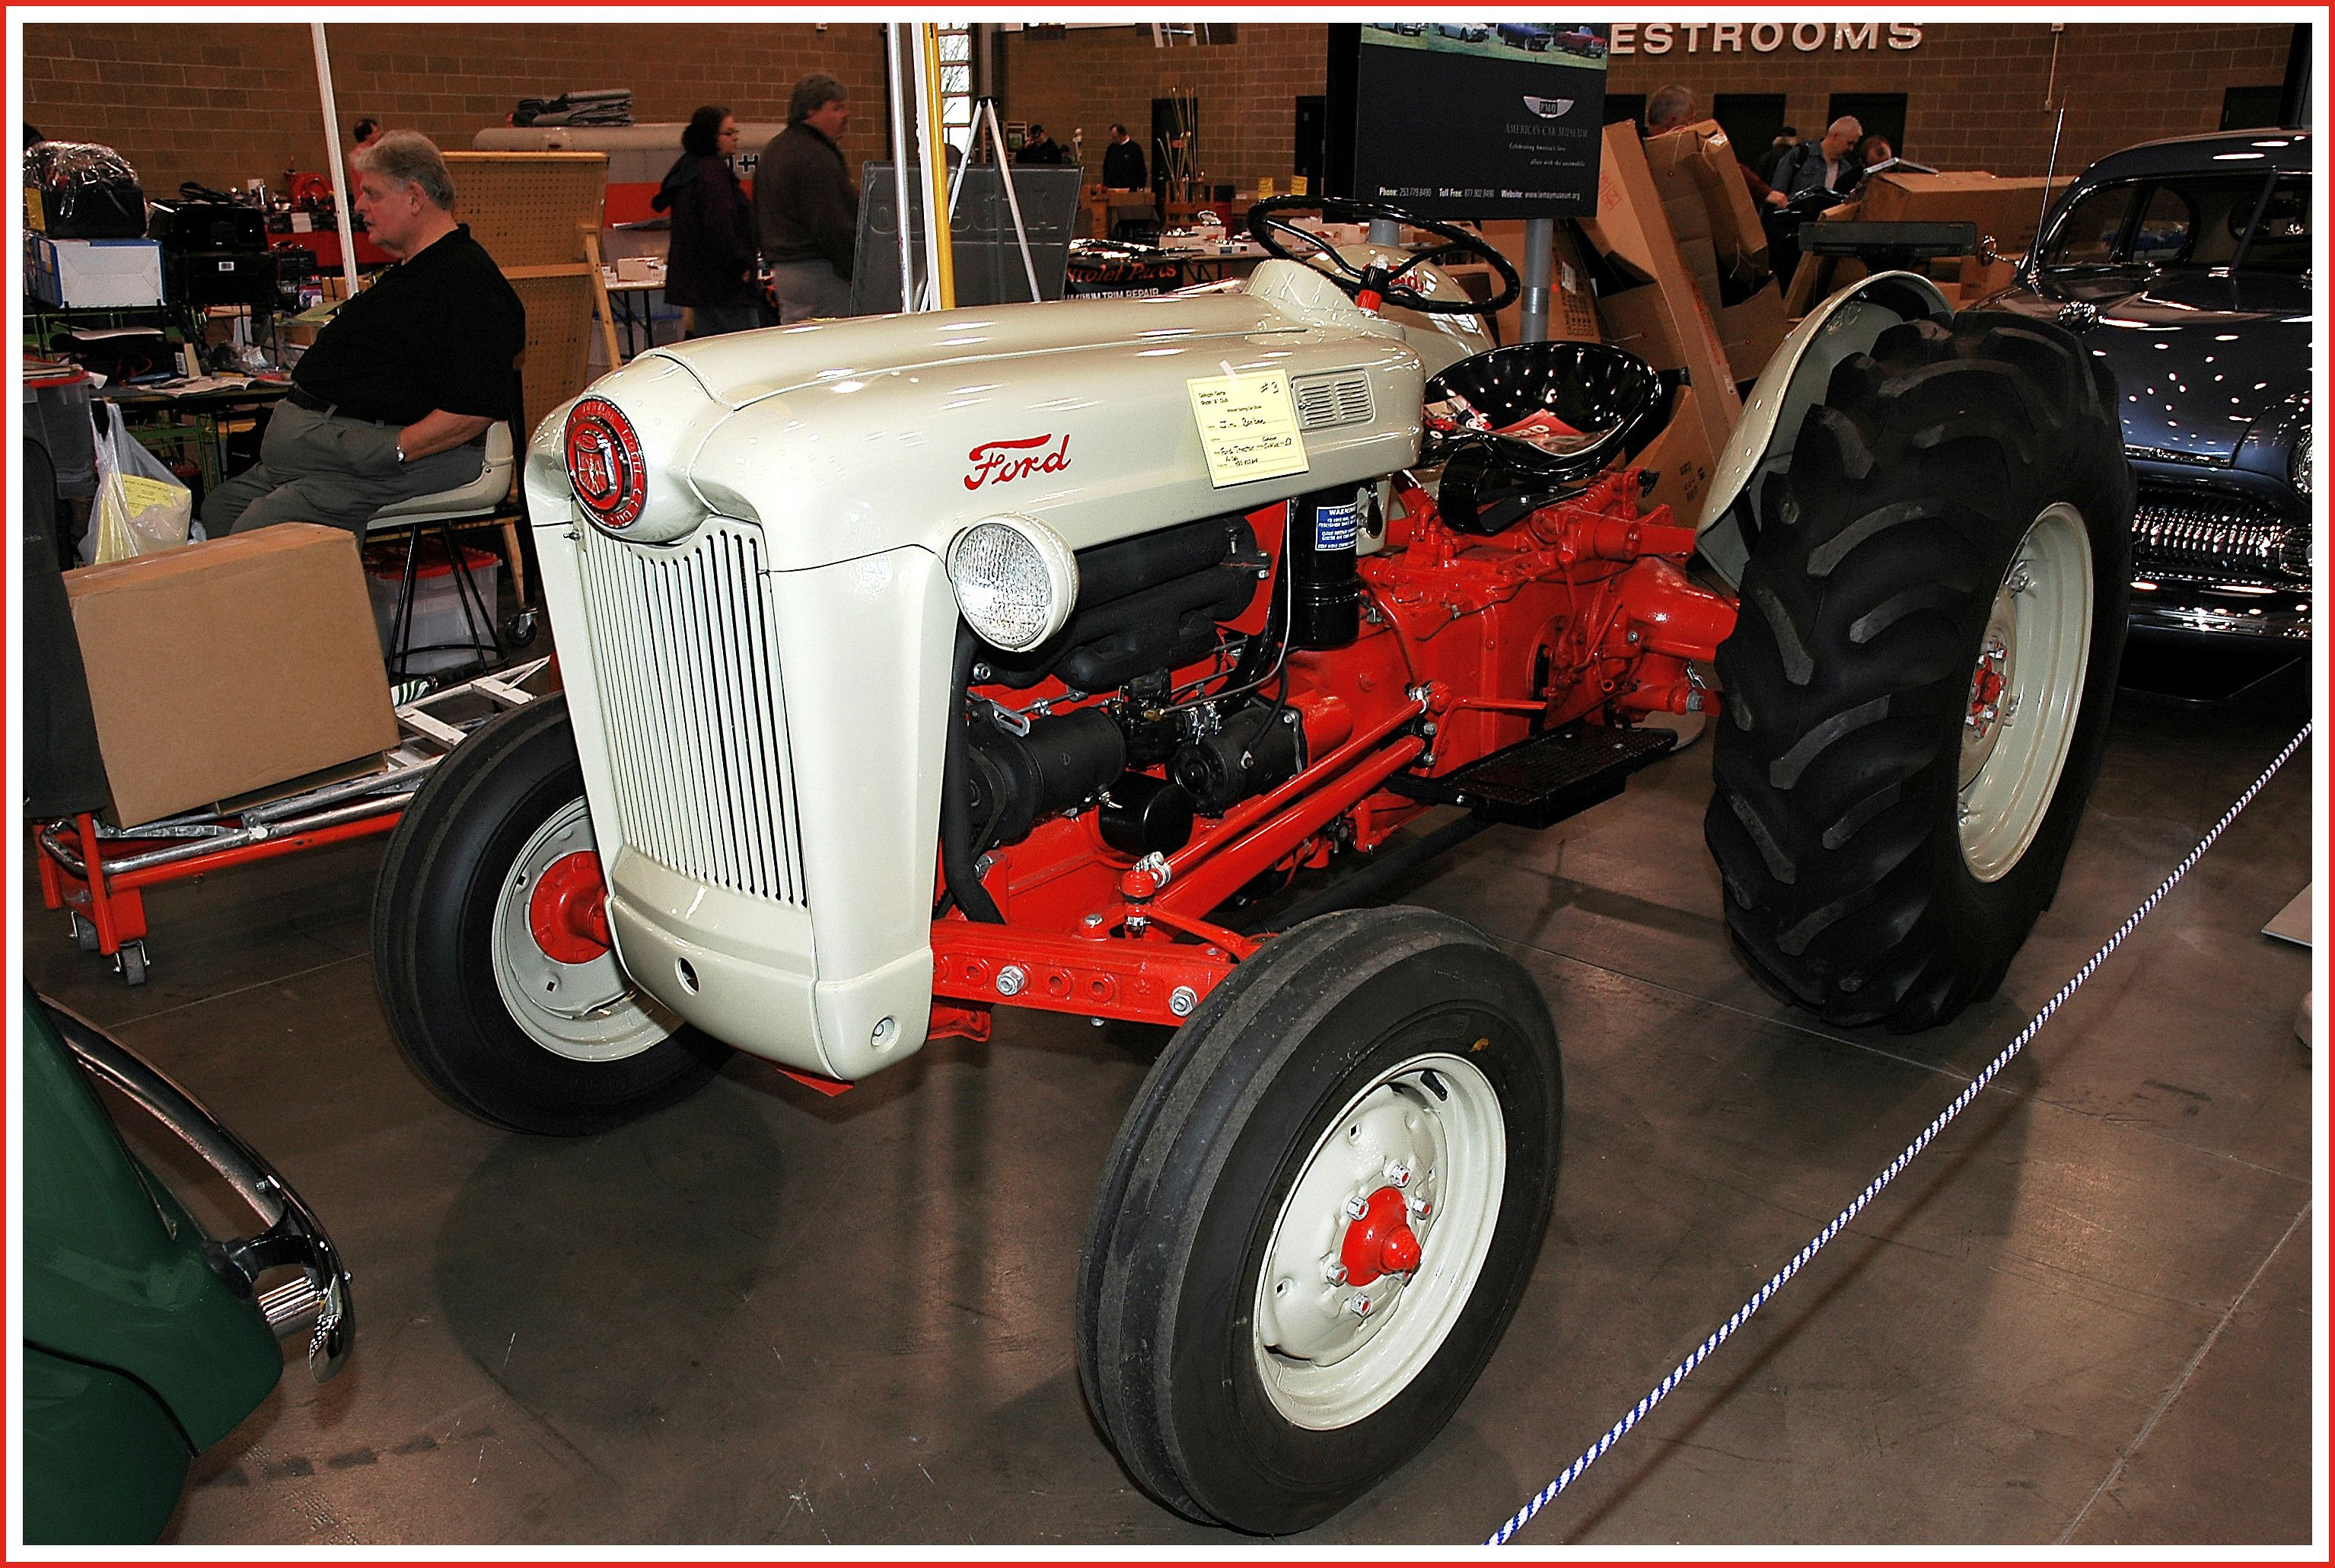 1953 Ford Golden Jubilee Tractor In 2020 Ford Tractors Tractors Classic Tractor